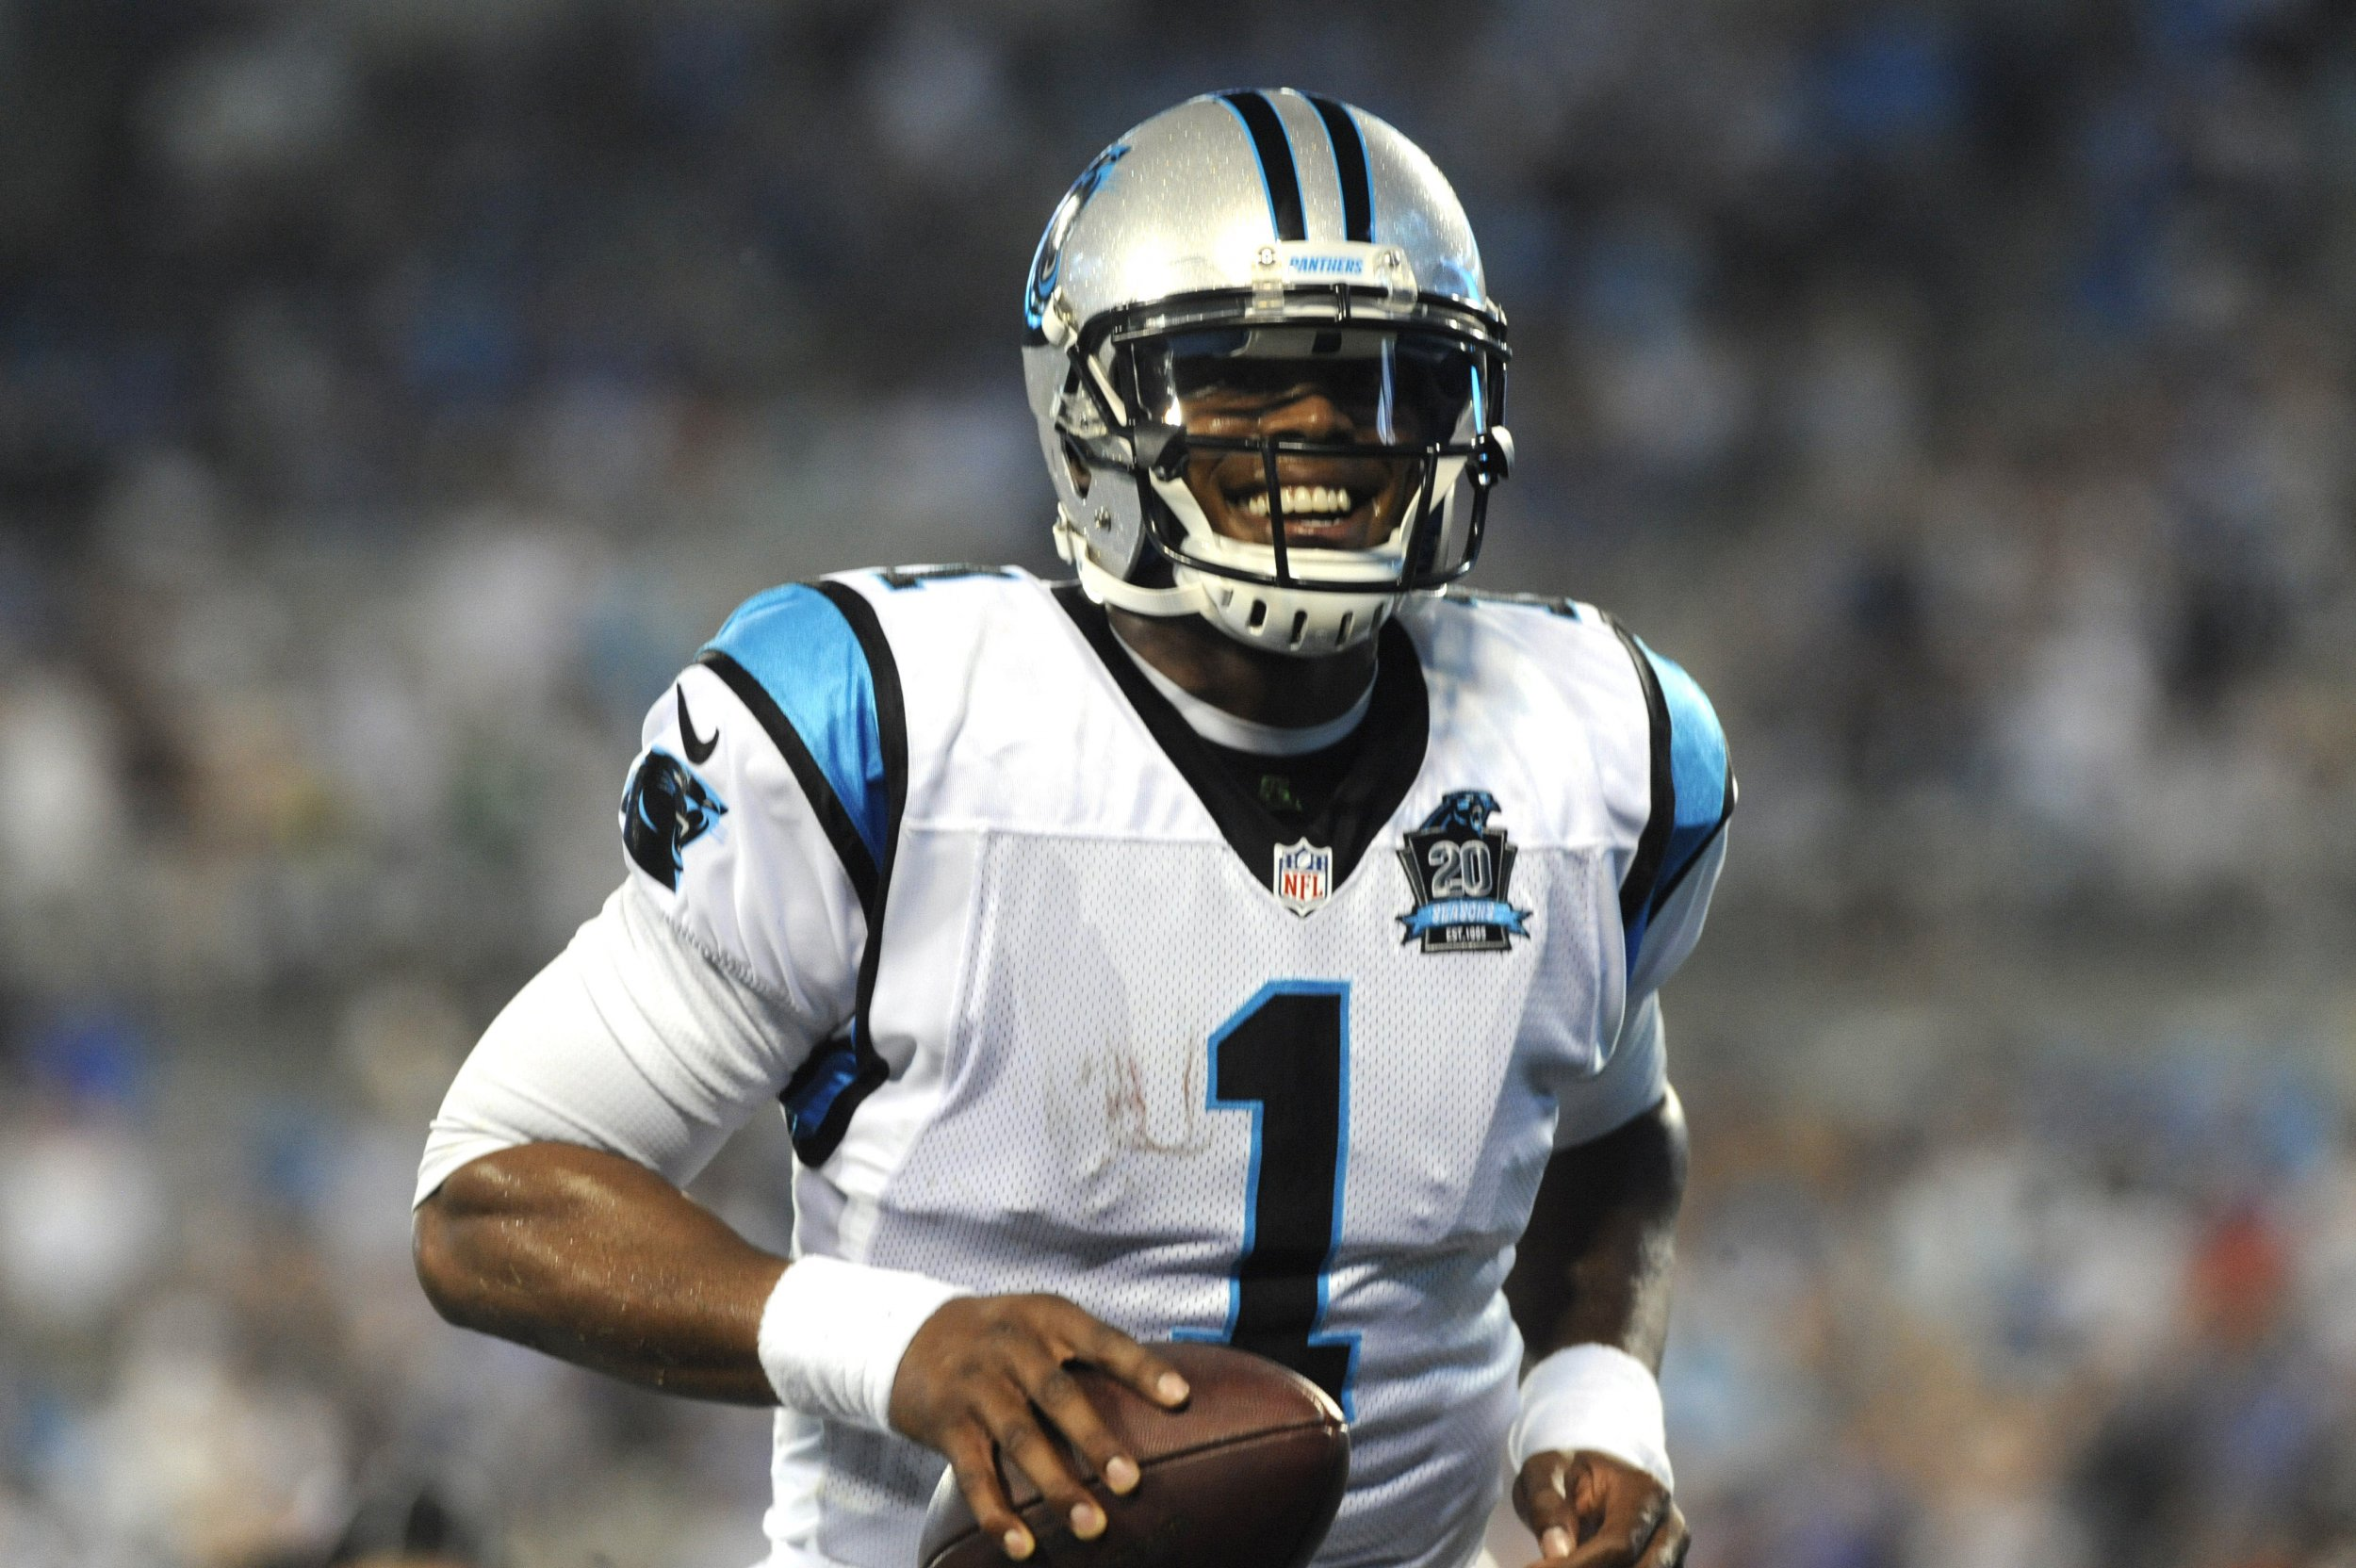 f2c45c90610 Carolina Panthers quarterback Cam Newton during the first half of a game  against the Kansas City Chiefs. Sam Sharpe USA TODAY Sports